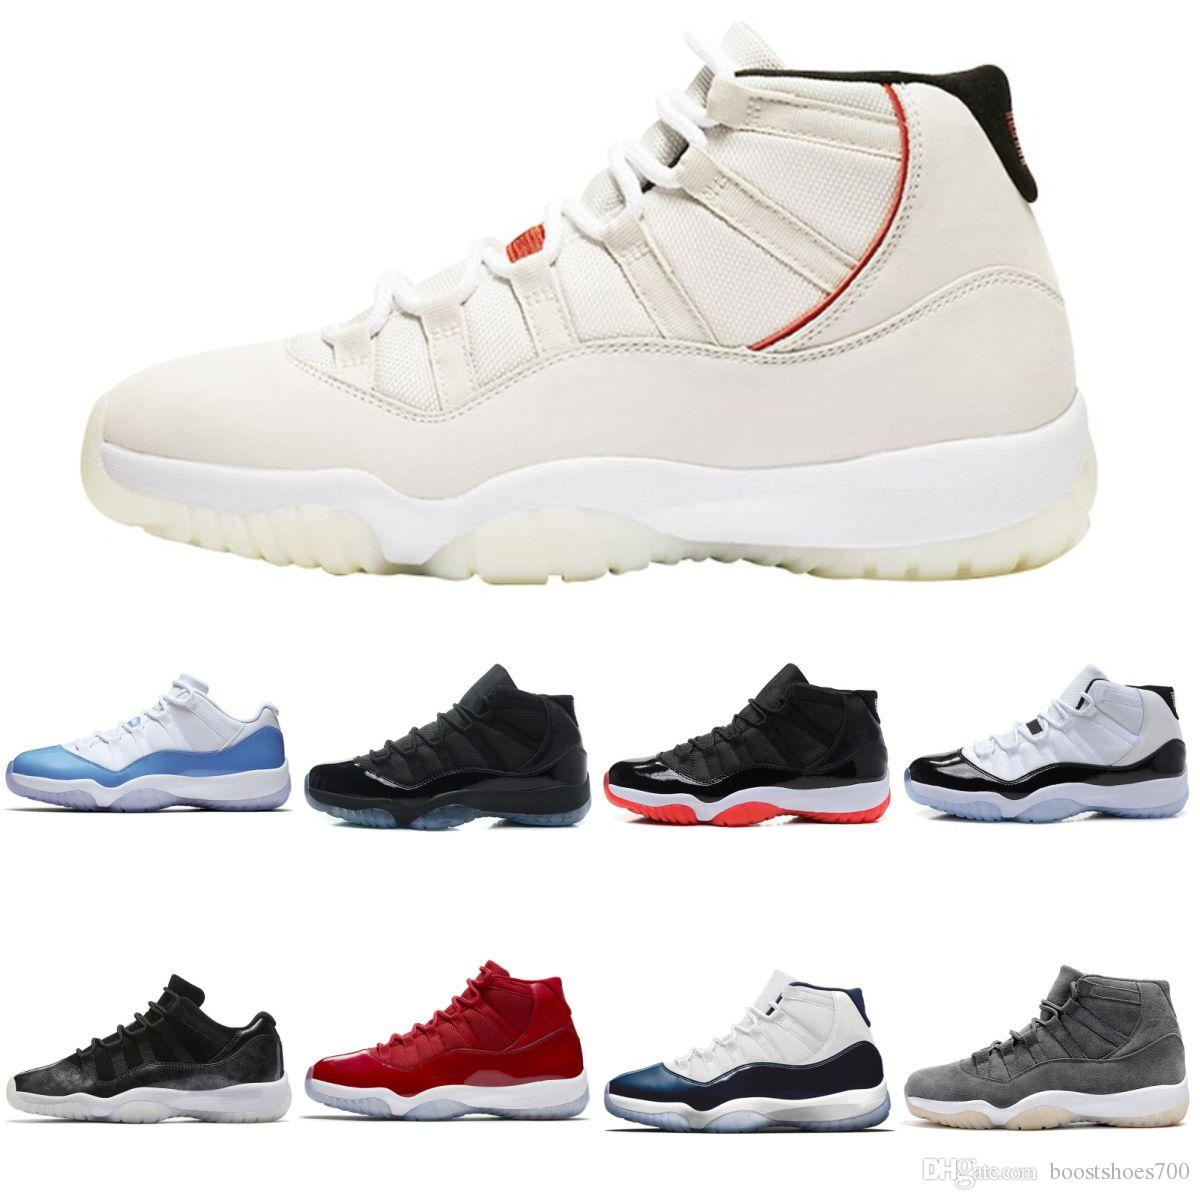 huge selection of 4e997 95949 Platinum Tint Concord 45 11 XI 11s Cap And Gown Mens Basketball Shoes Prom  Night Gym Bred Barons Space Jams Sneakers Designer Shoes Jordans Sneakers  ...